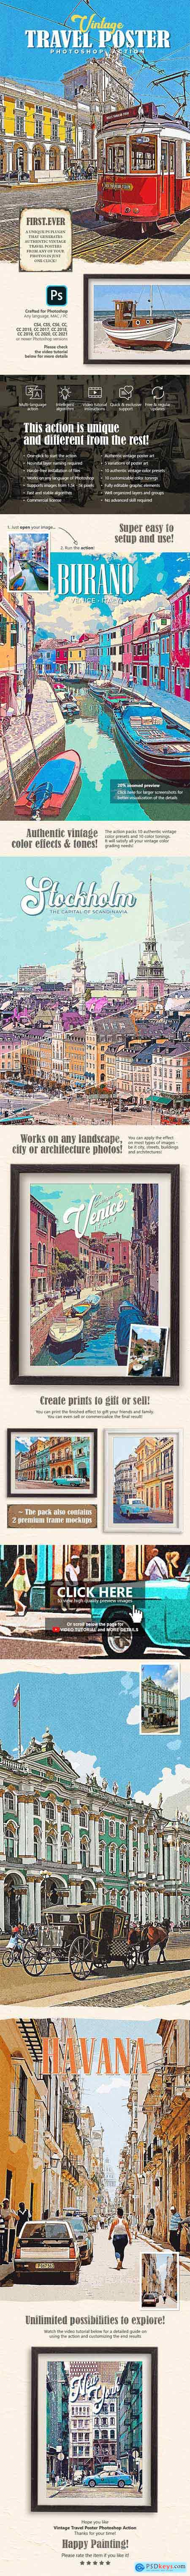 Vintage Travel Poster Photoshop Action 29146736